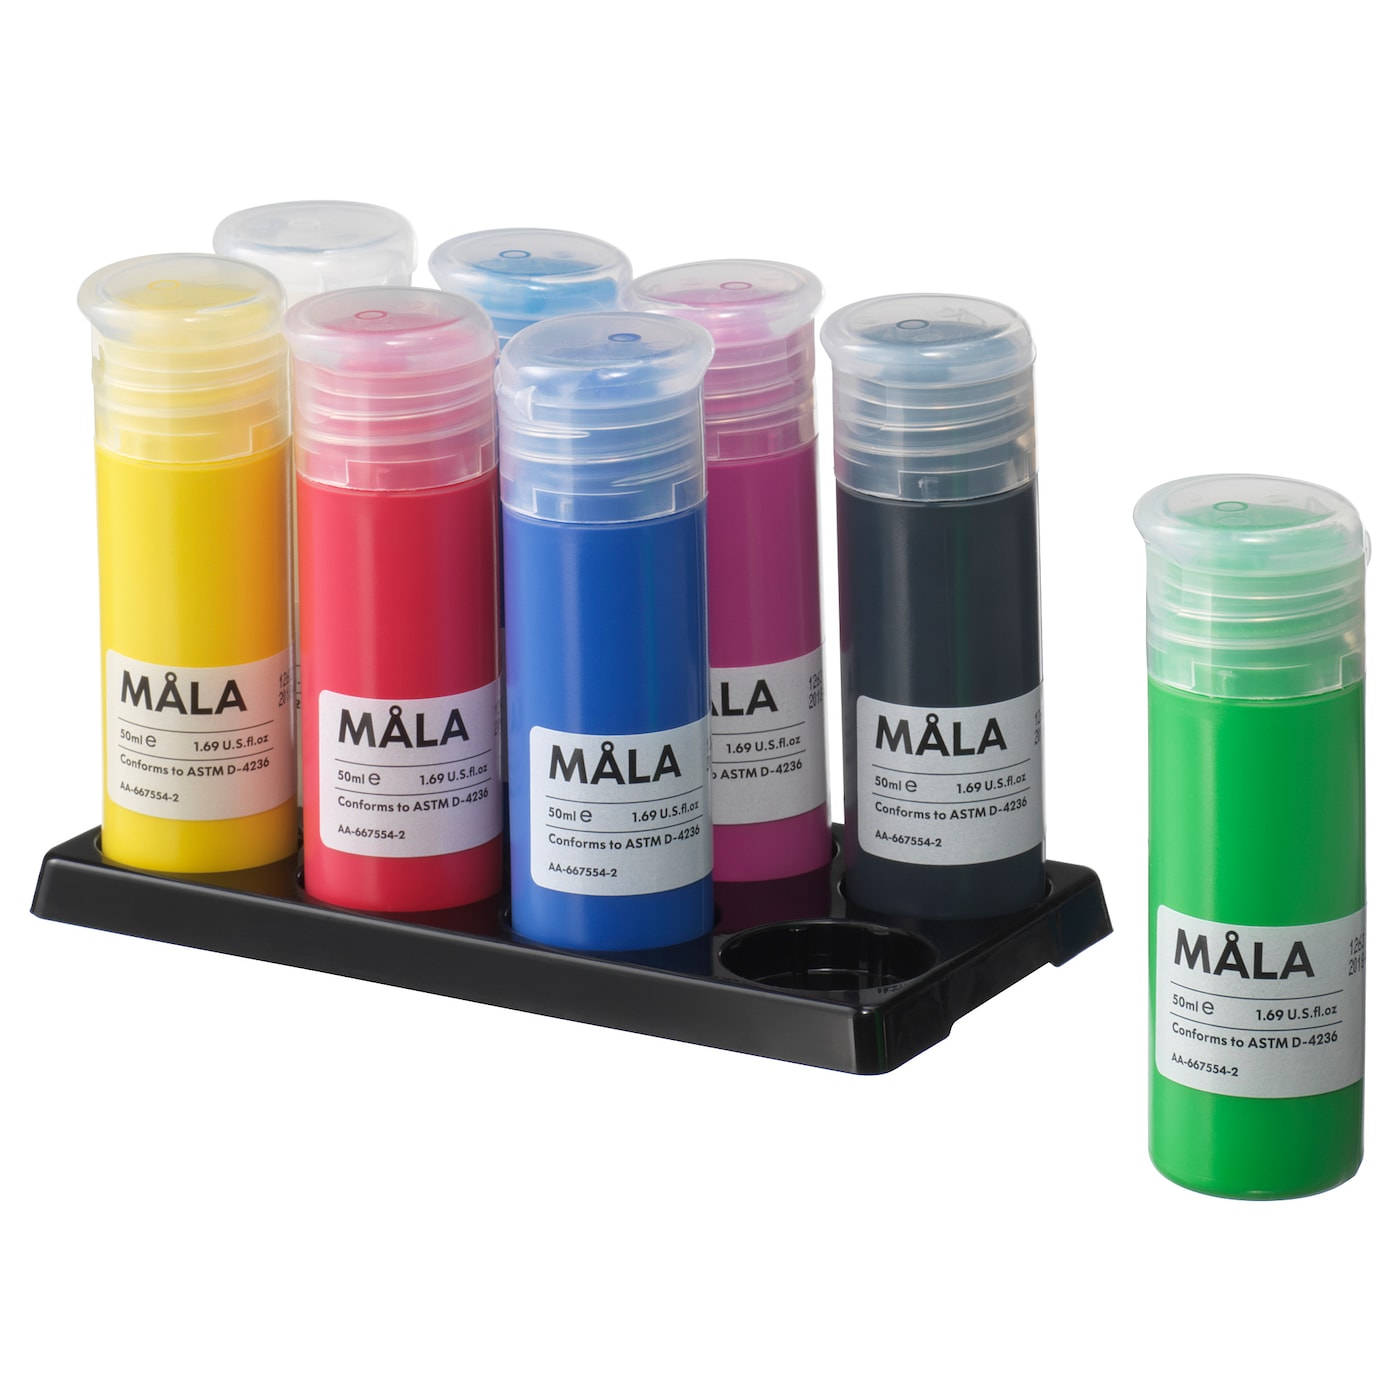 IKEA MÅLA paint It's easy to control the paint flow with easy-to-squeeze bottles.